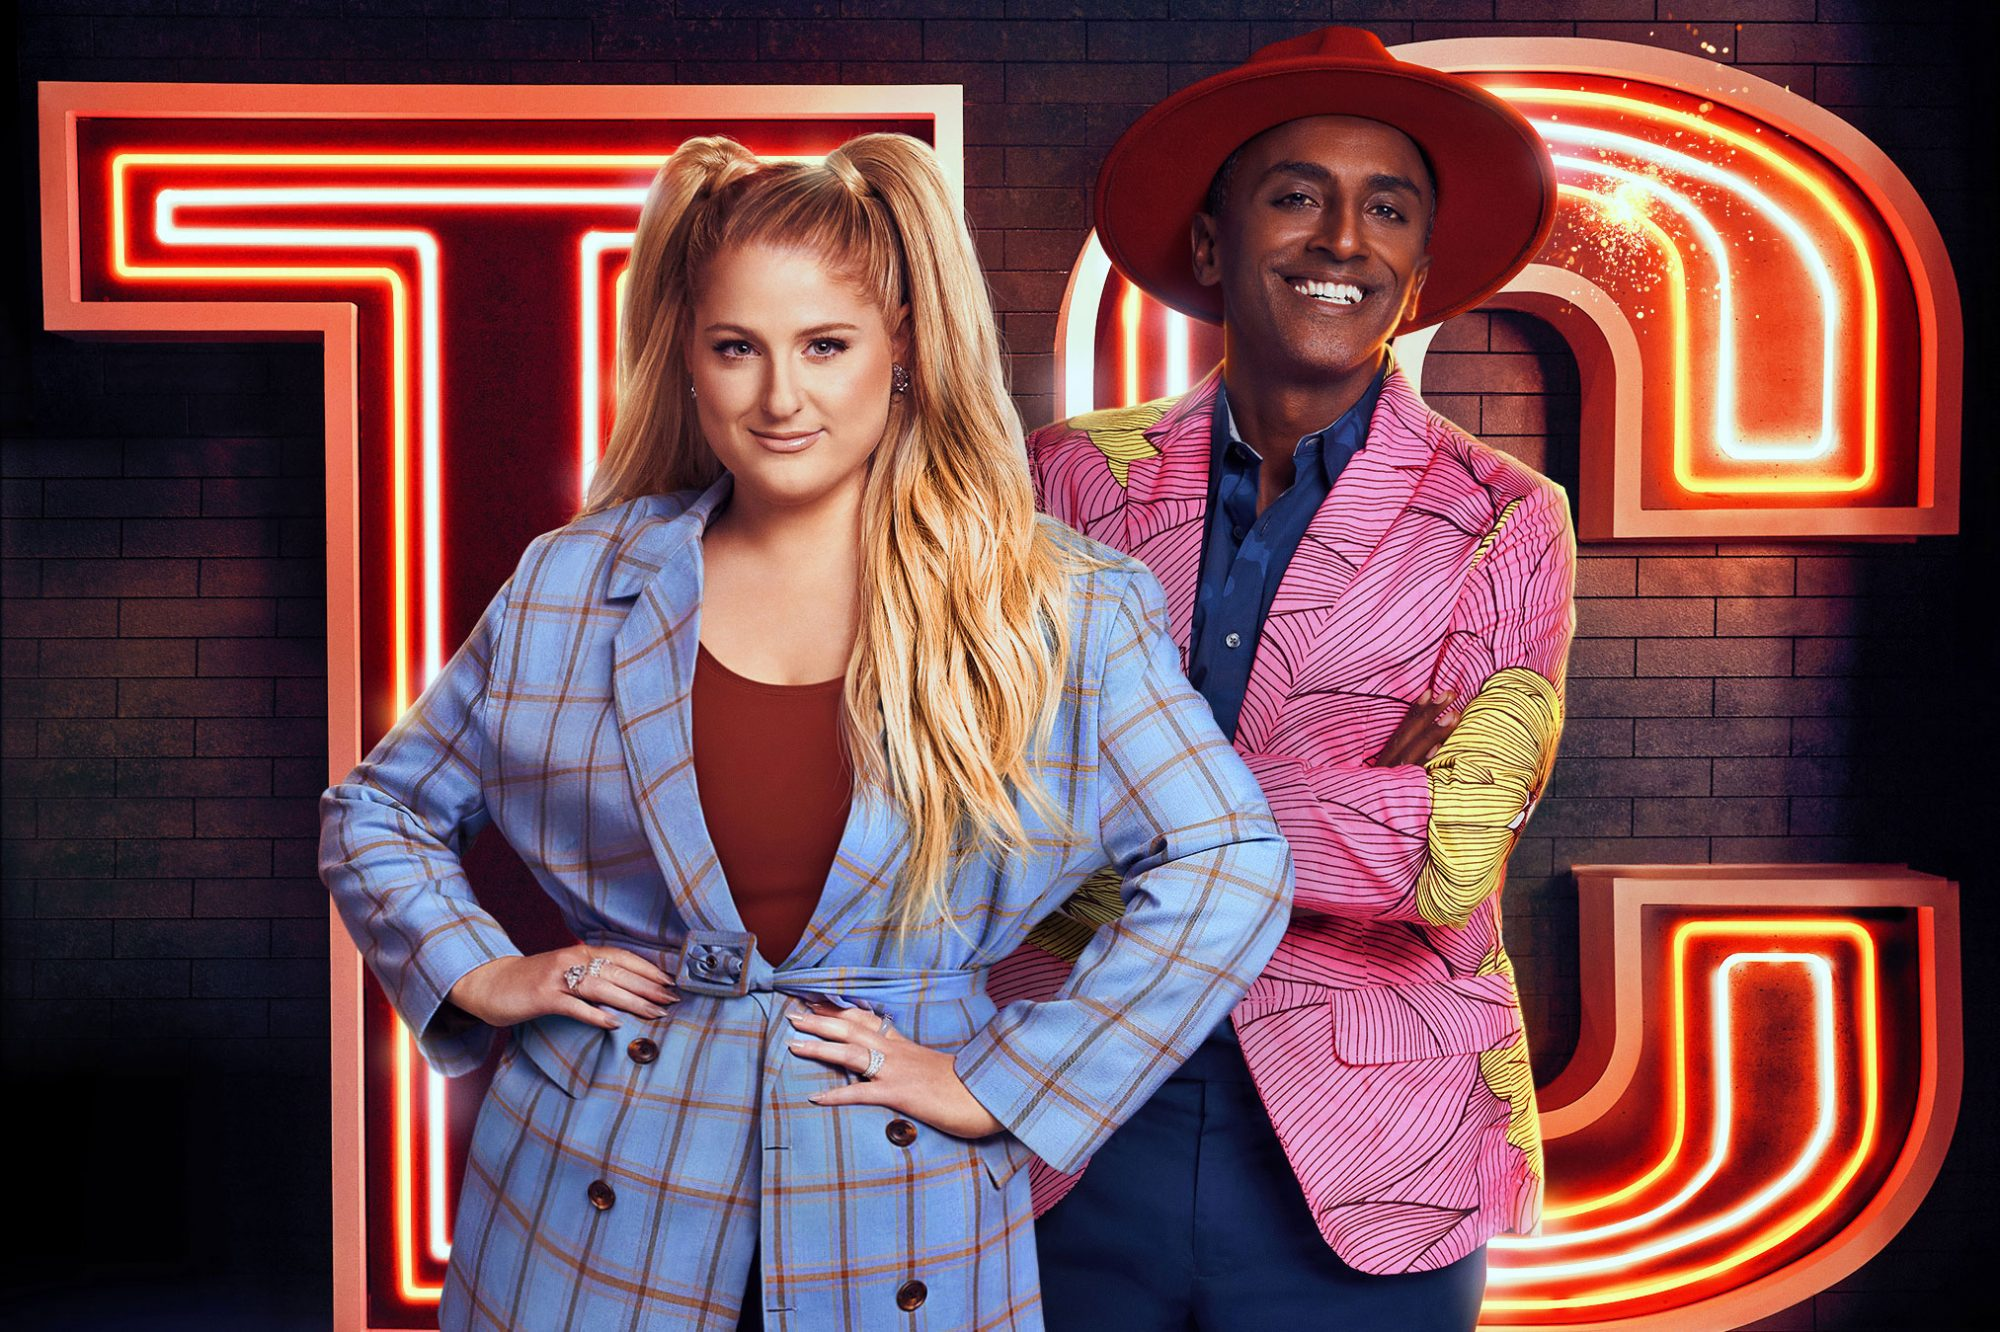 Top Chef Family Style hosts Meghan Trainor and Marcus Samuelsson